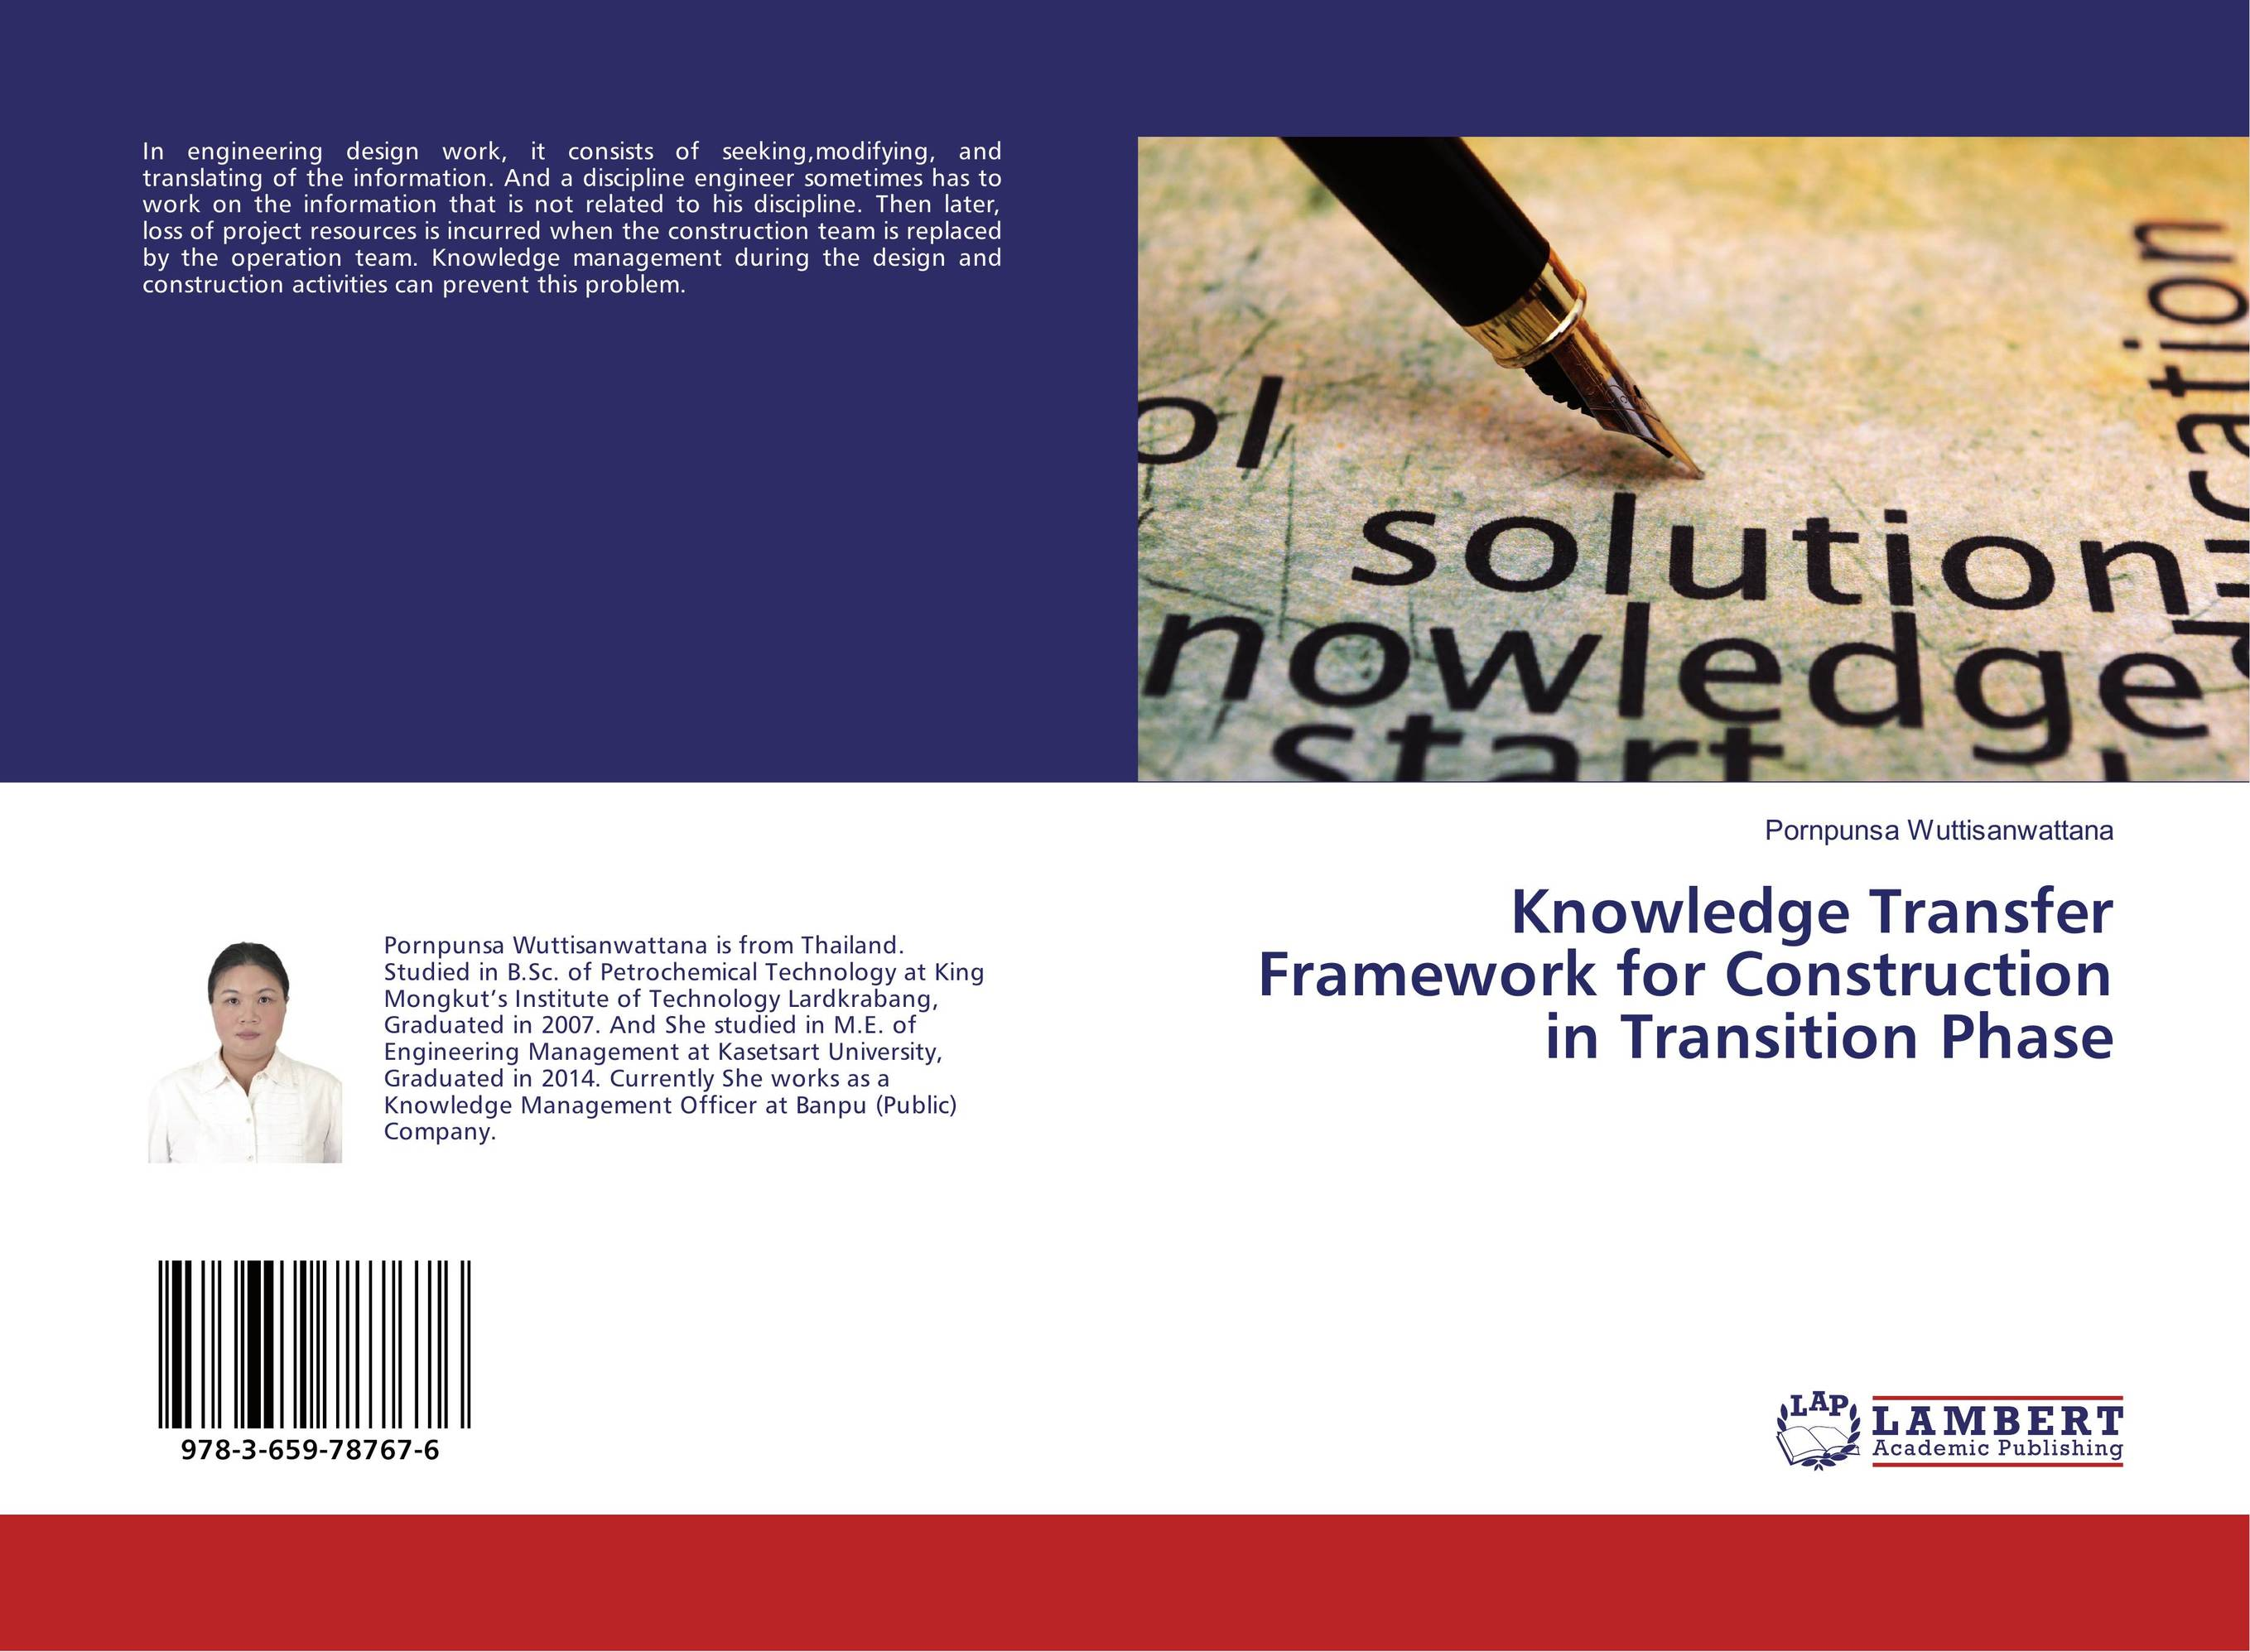 Knowledge Transfer Framework for Construction in Transition Phase